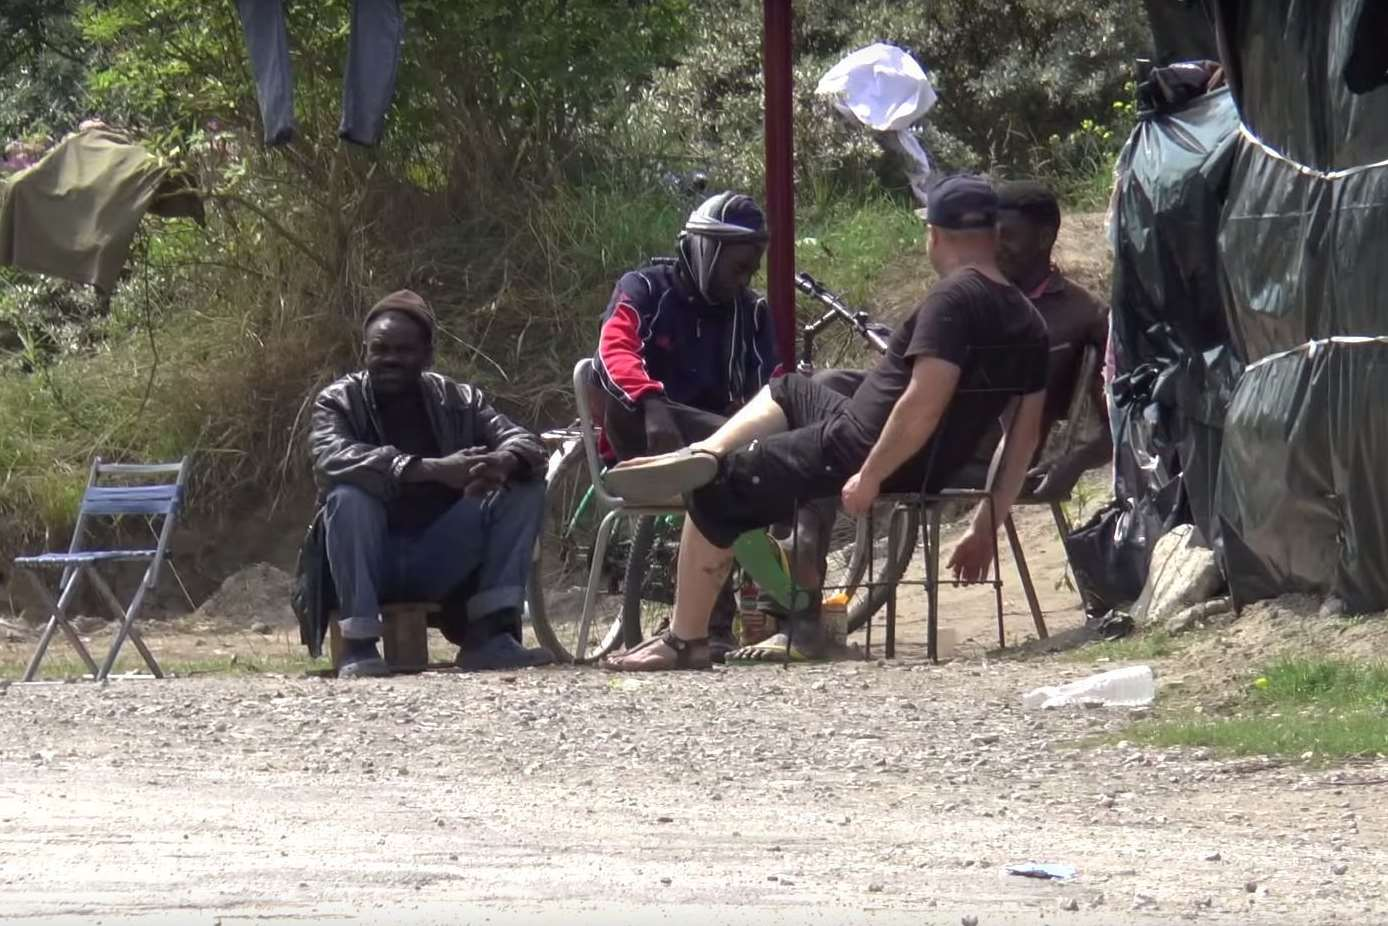 Migrants at the camp in Calais, near the Eurotunnel terminal